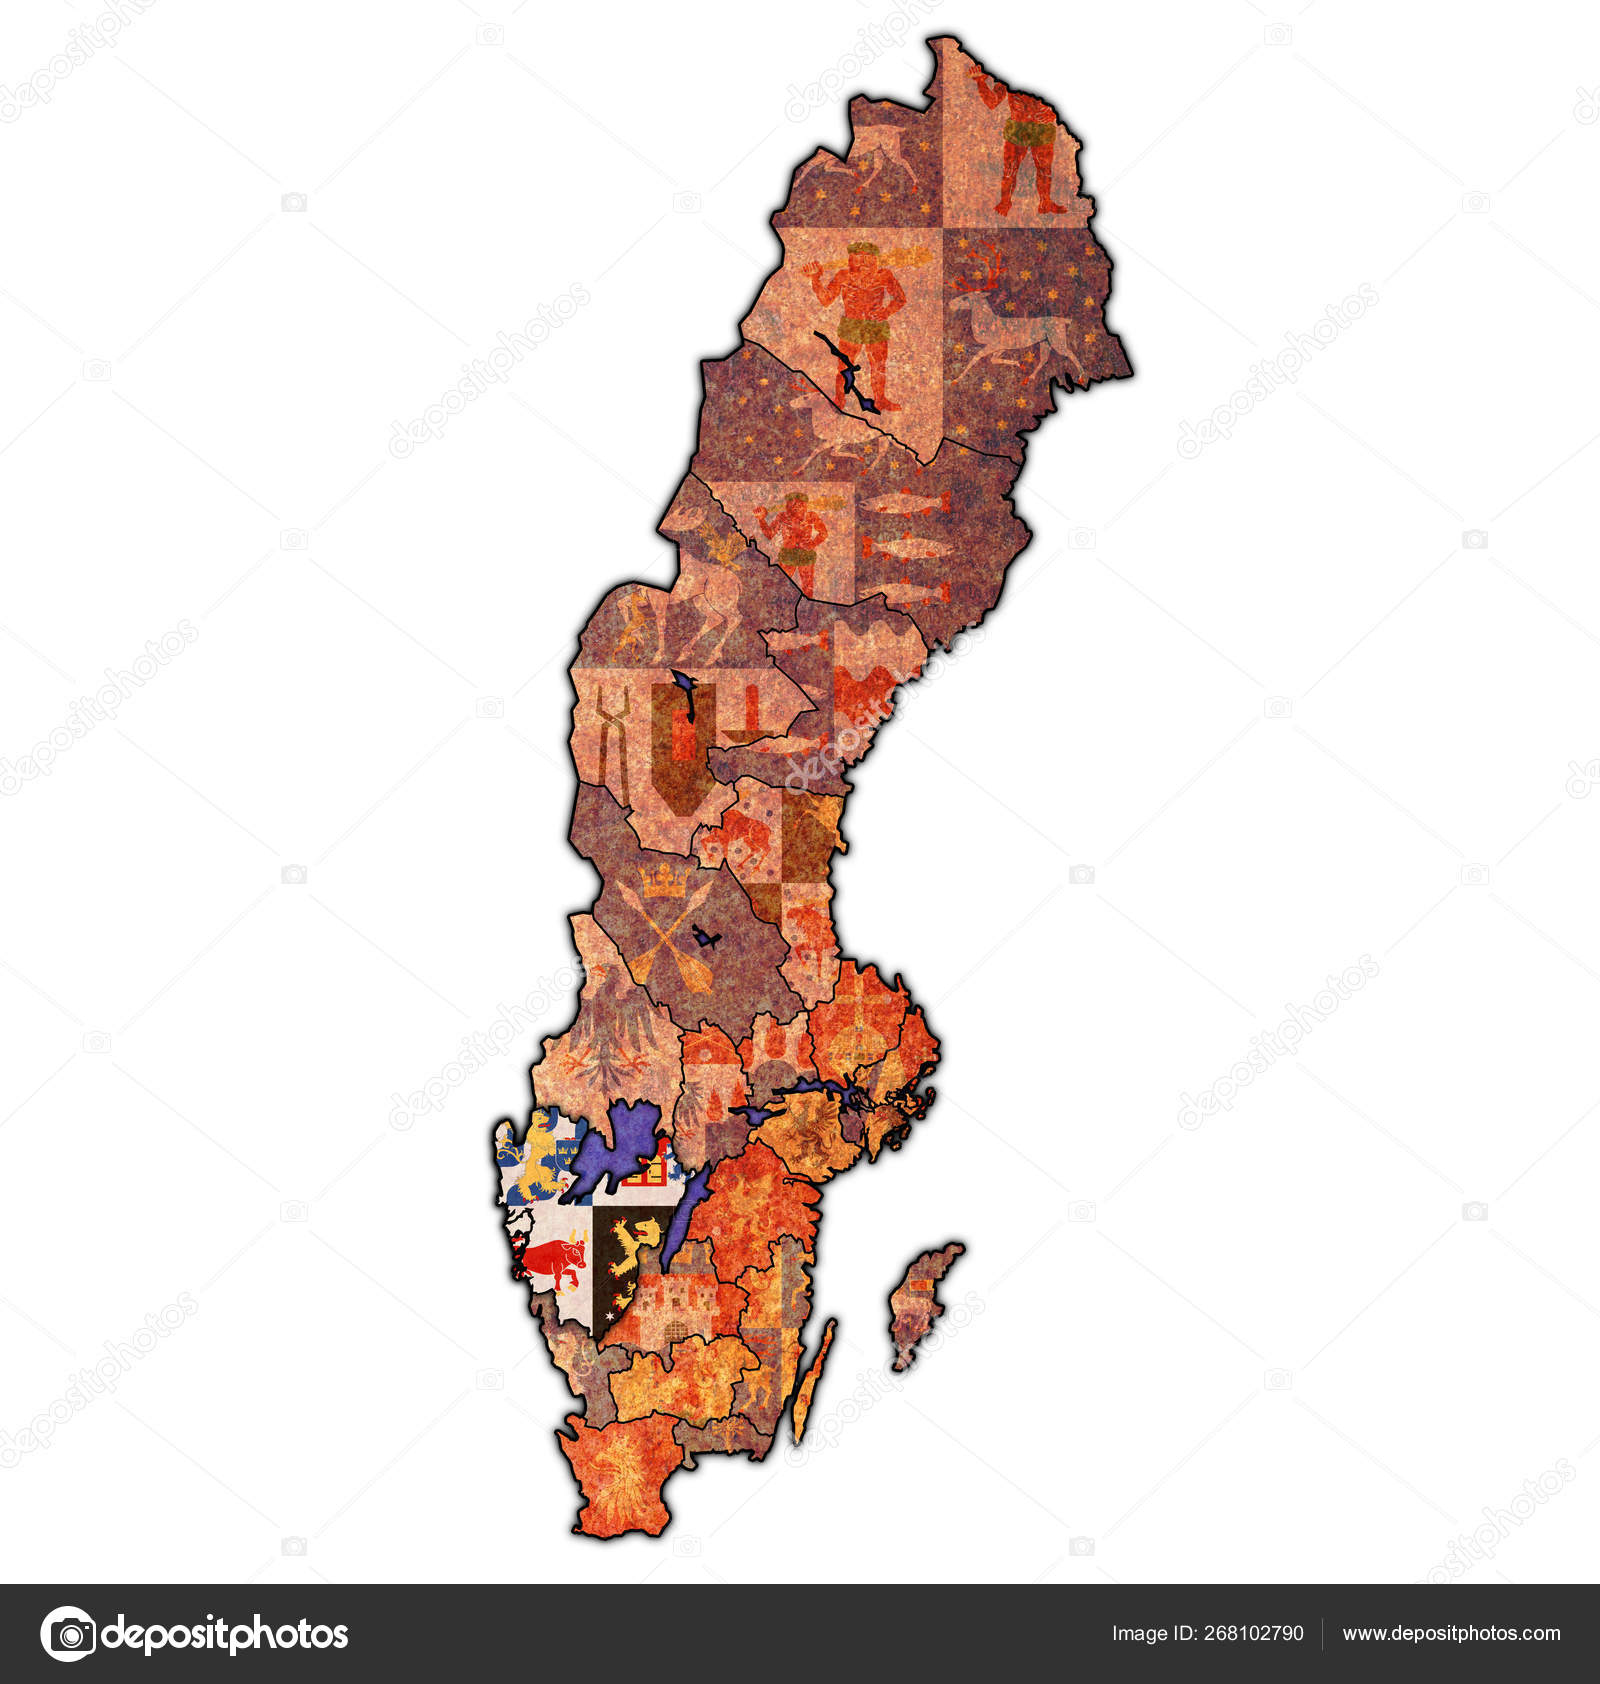 Vastra Gotaland On Map Of Swedish Counties Stock Photo C Michal812 268102790